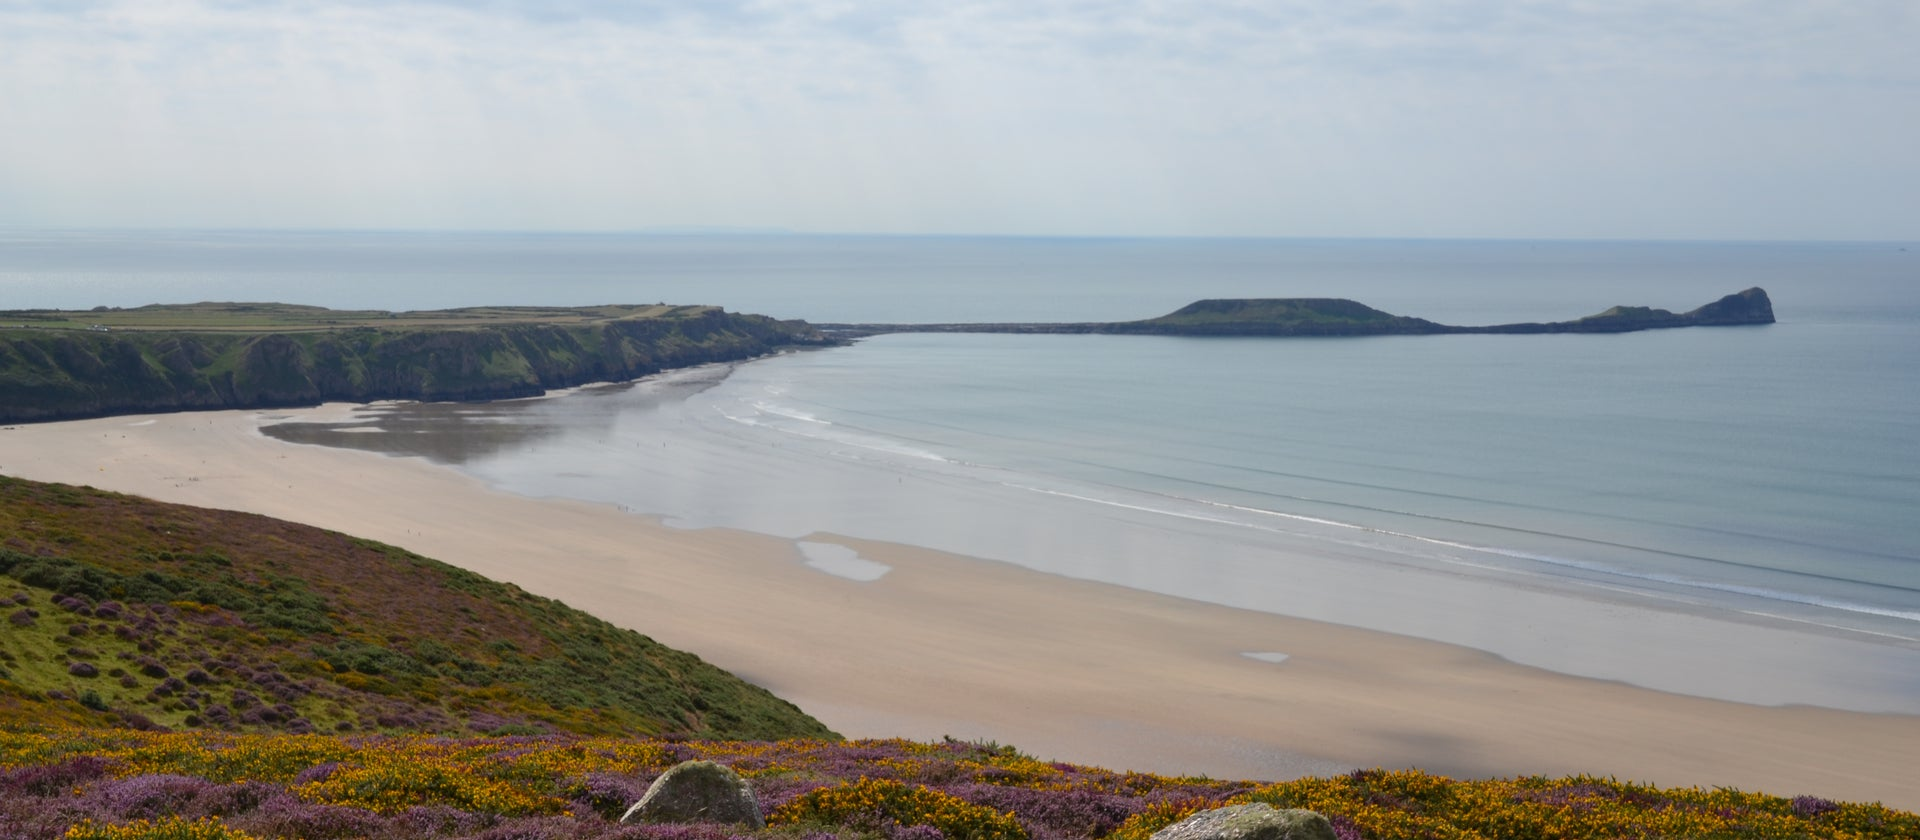 Paraglider airlifted to hospital after crashing in Rhossili | ITV News